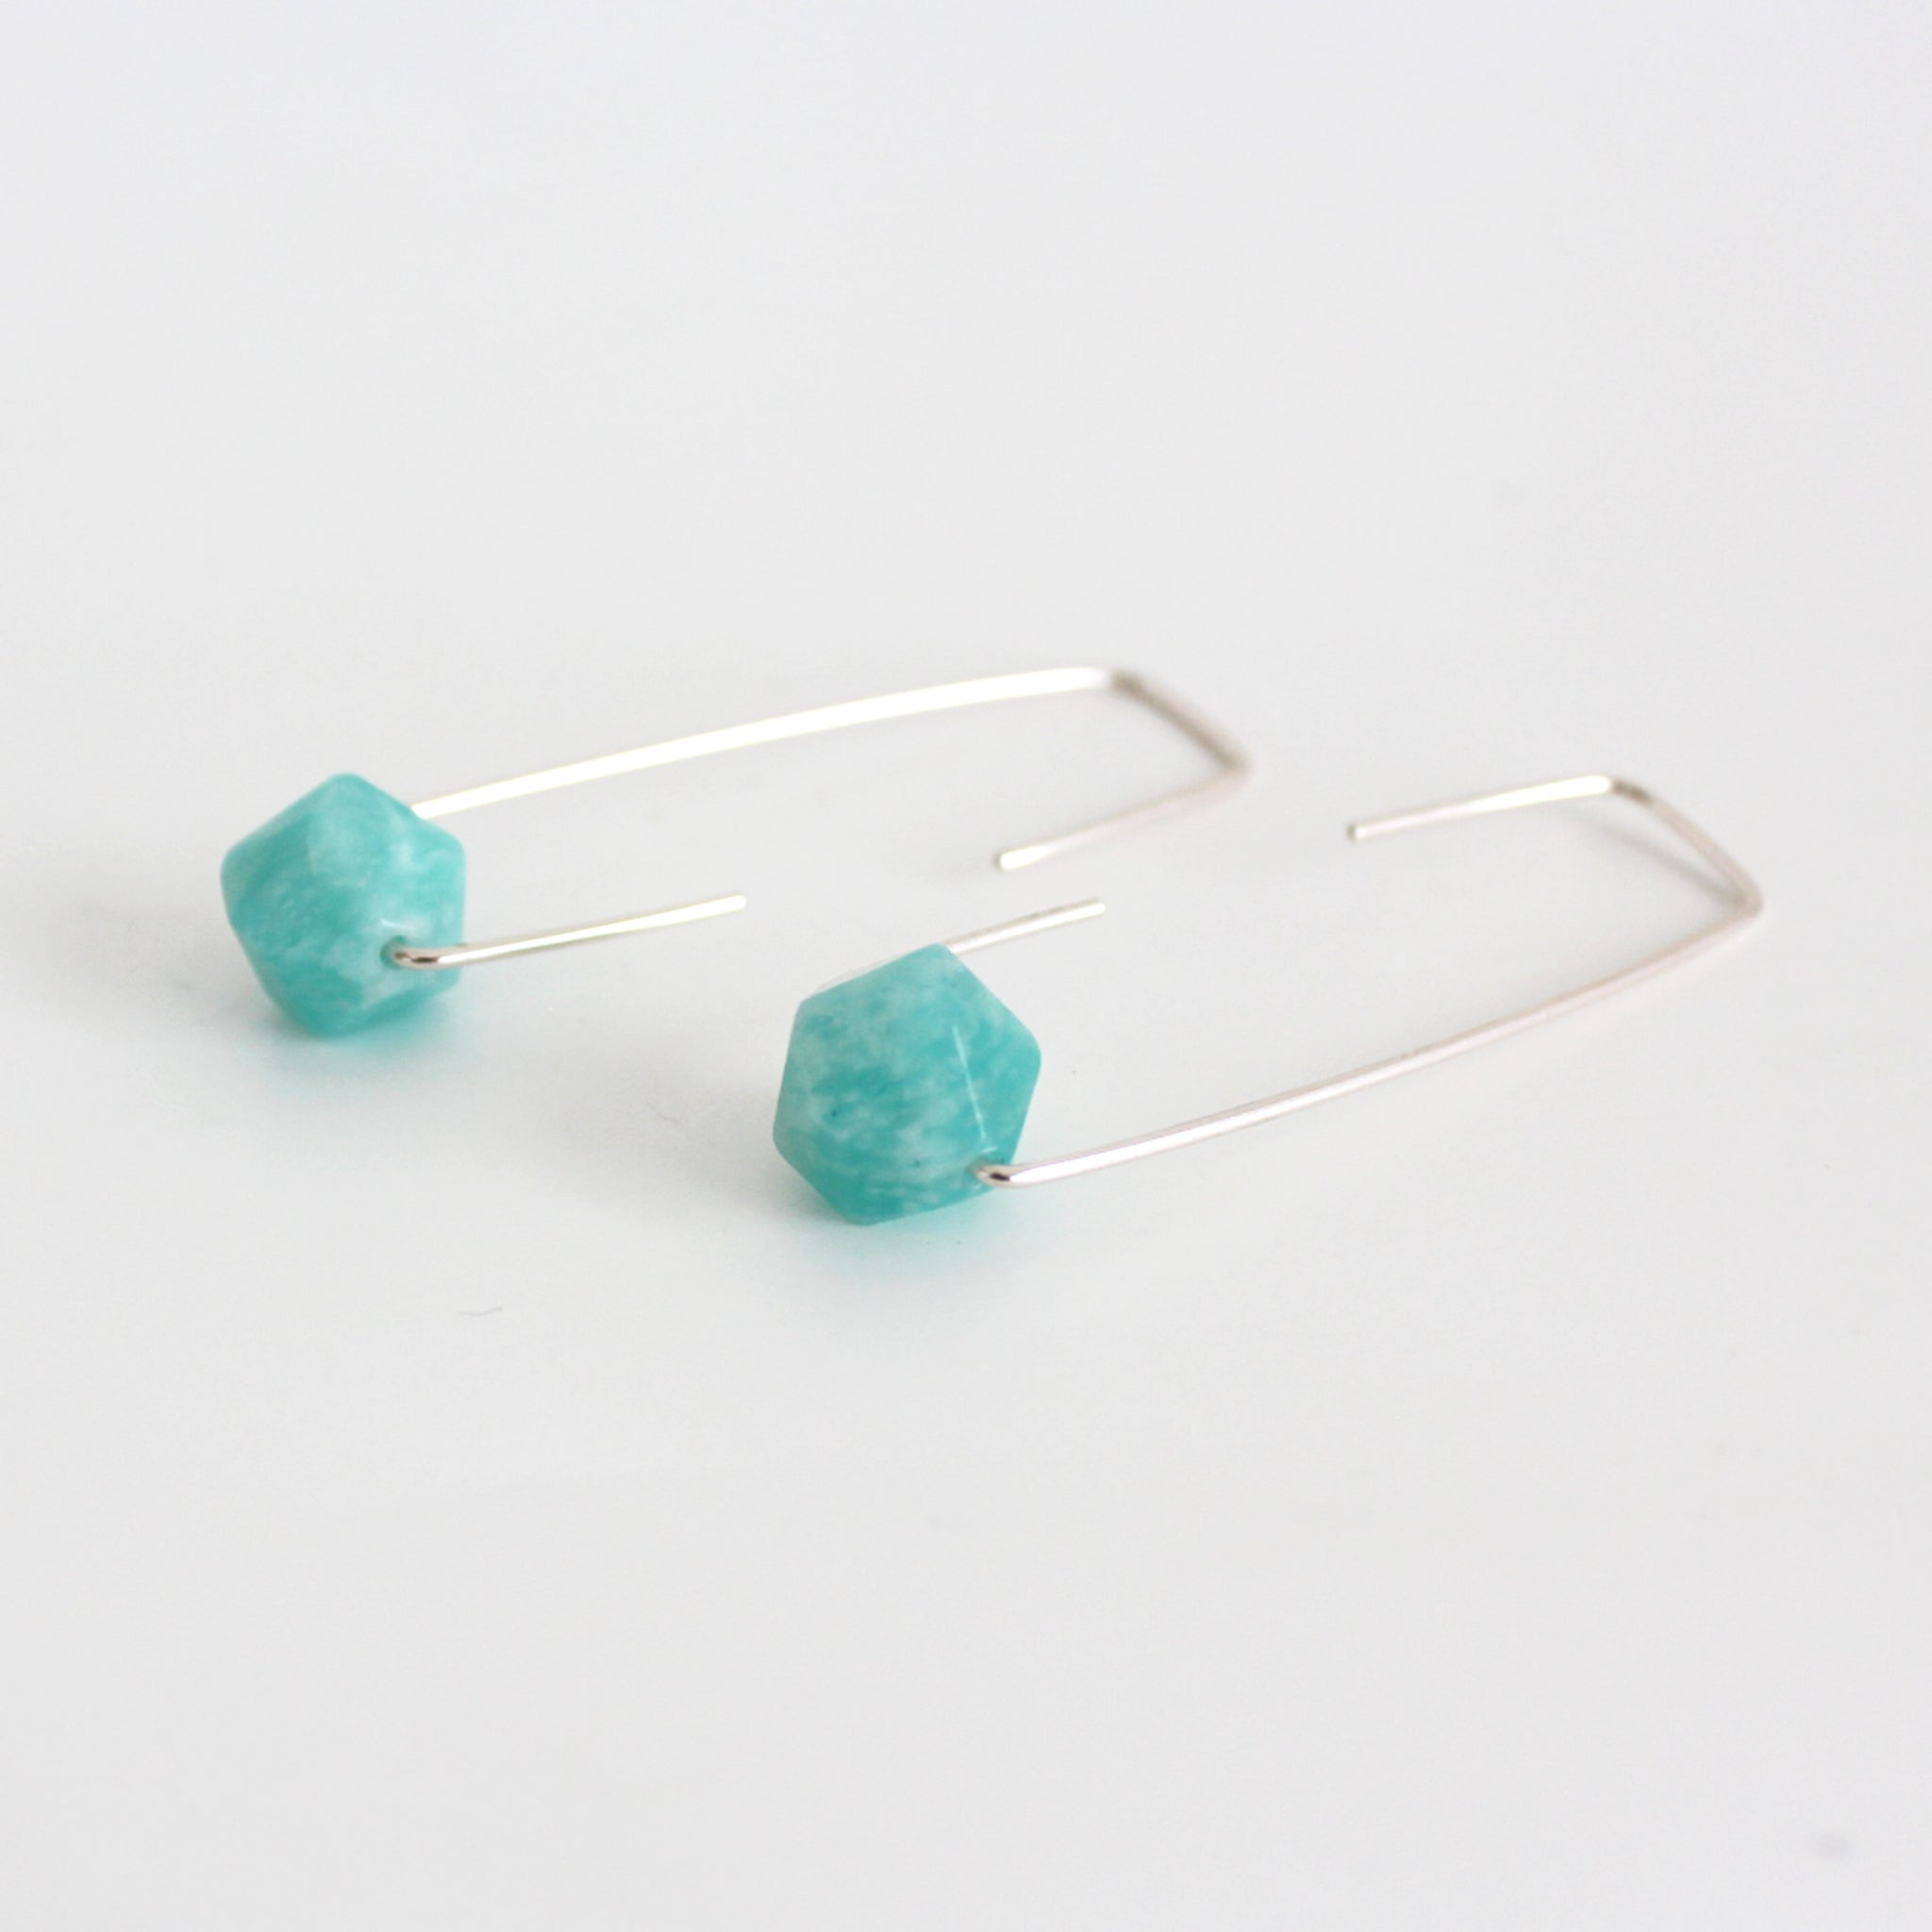 Amazonite Staple earrings